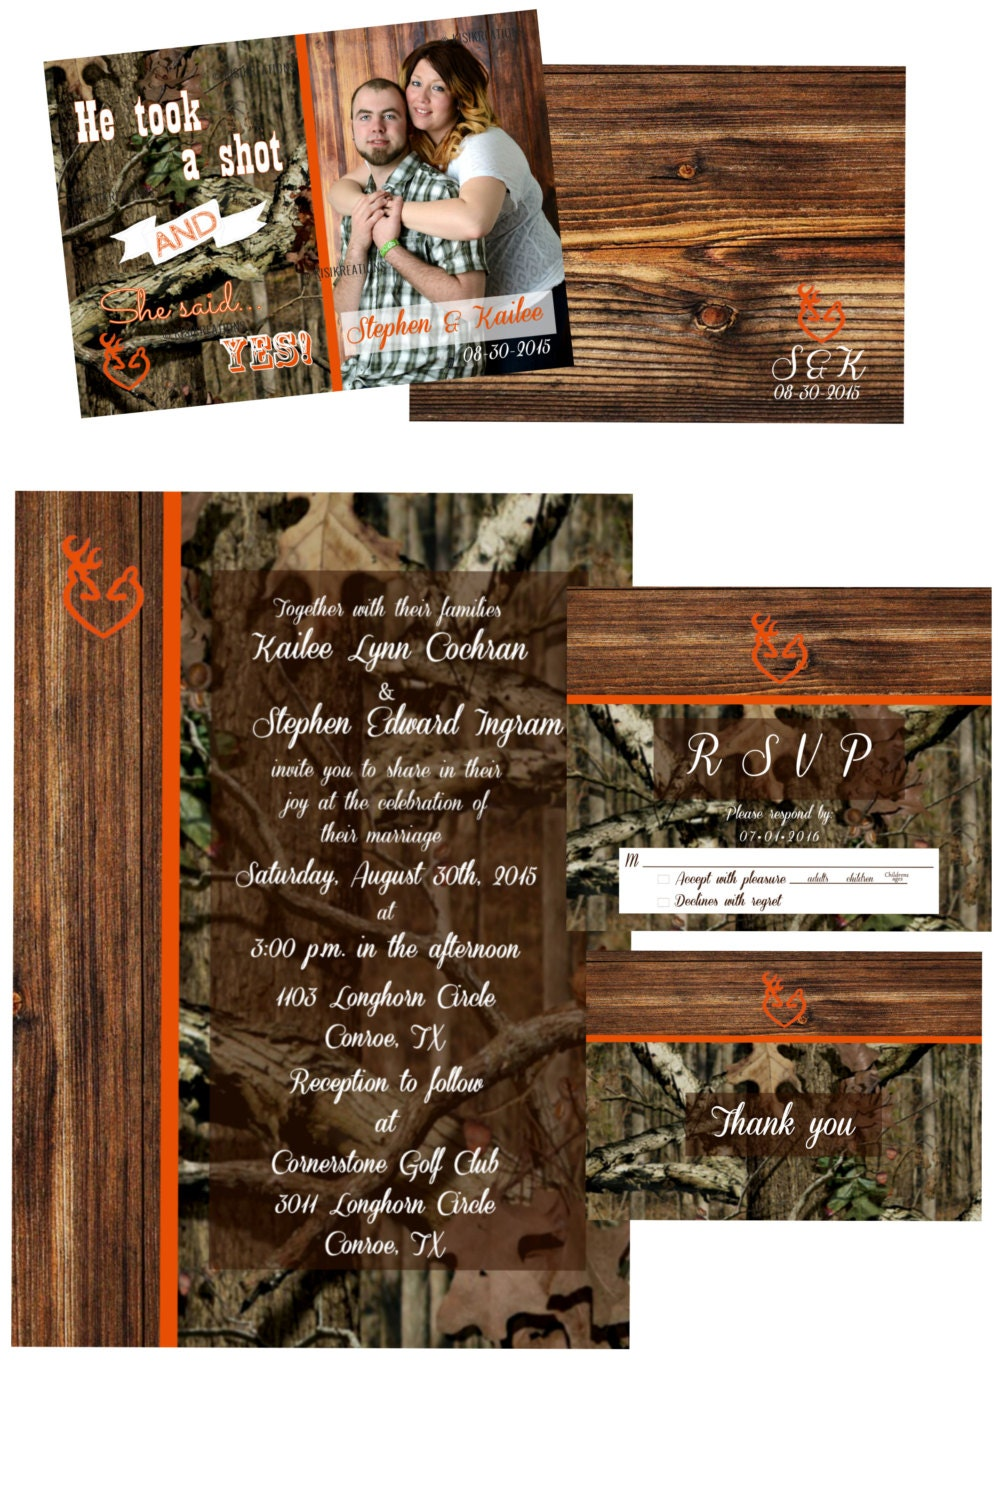 mossy oak new up wedding invitations - 100 images - camouflage ...